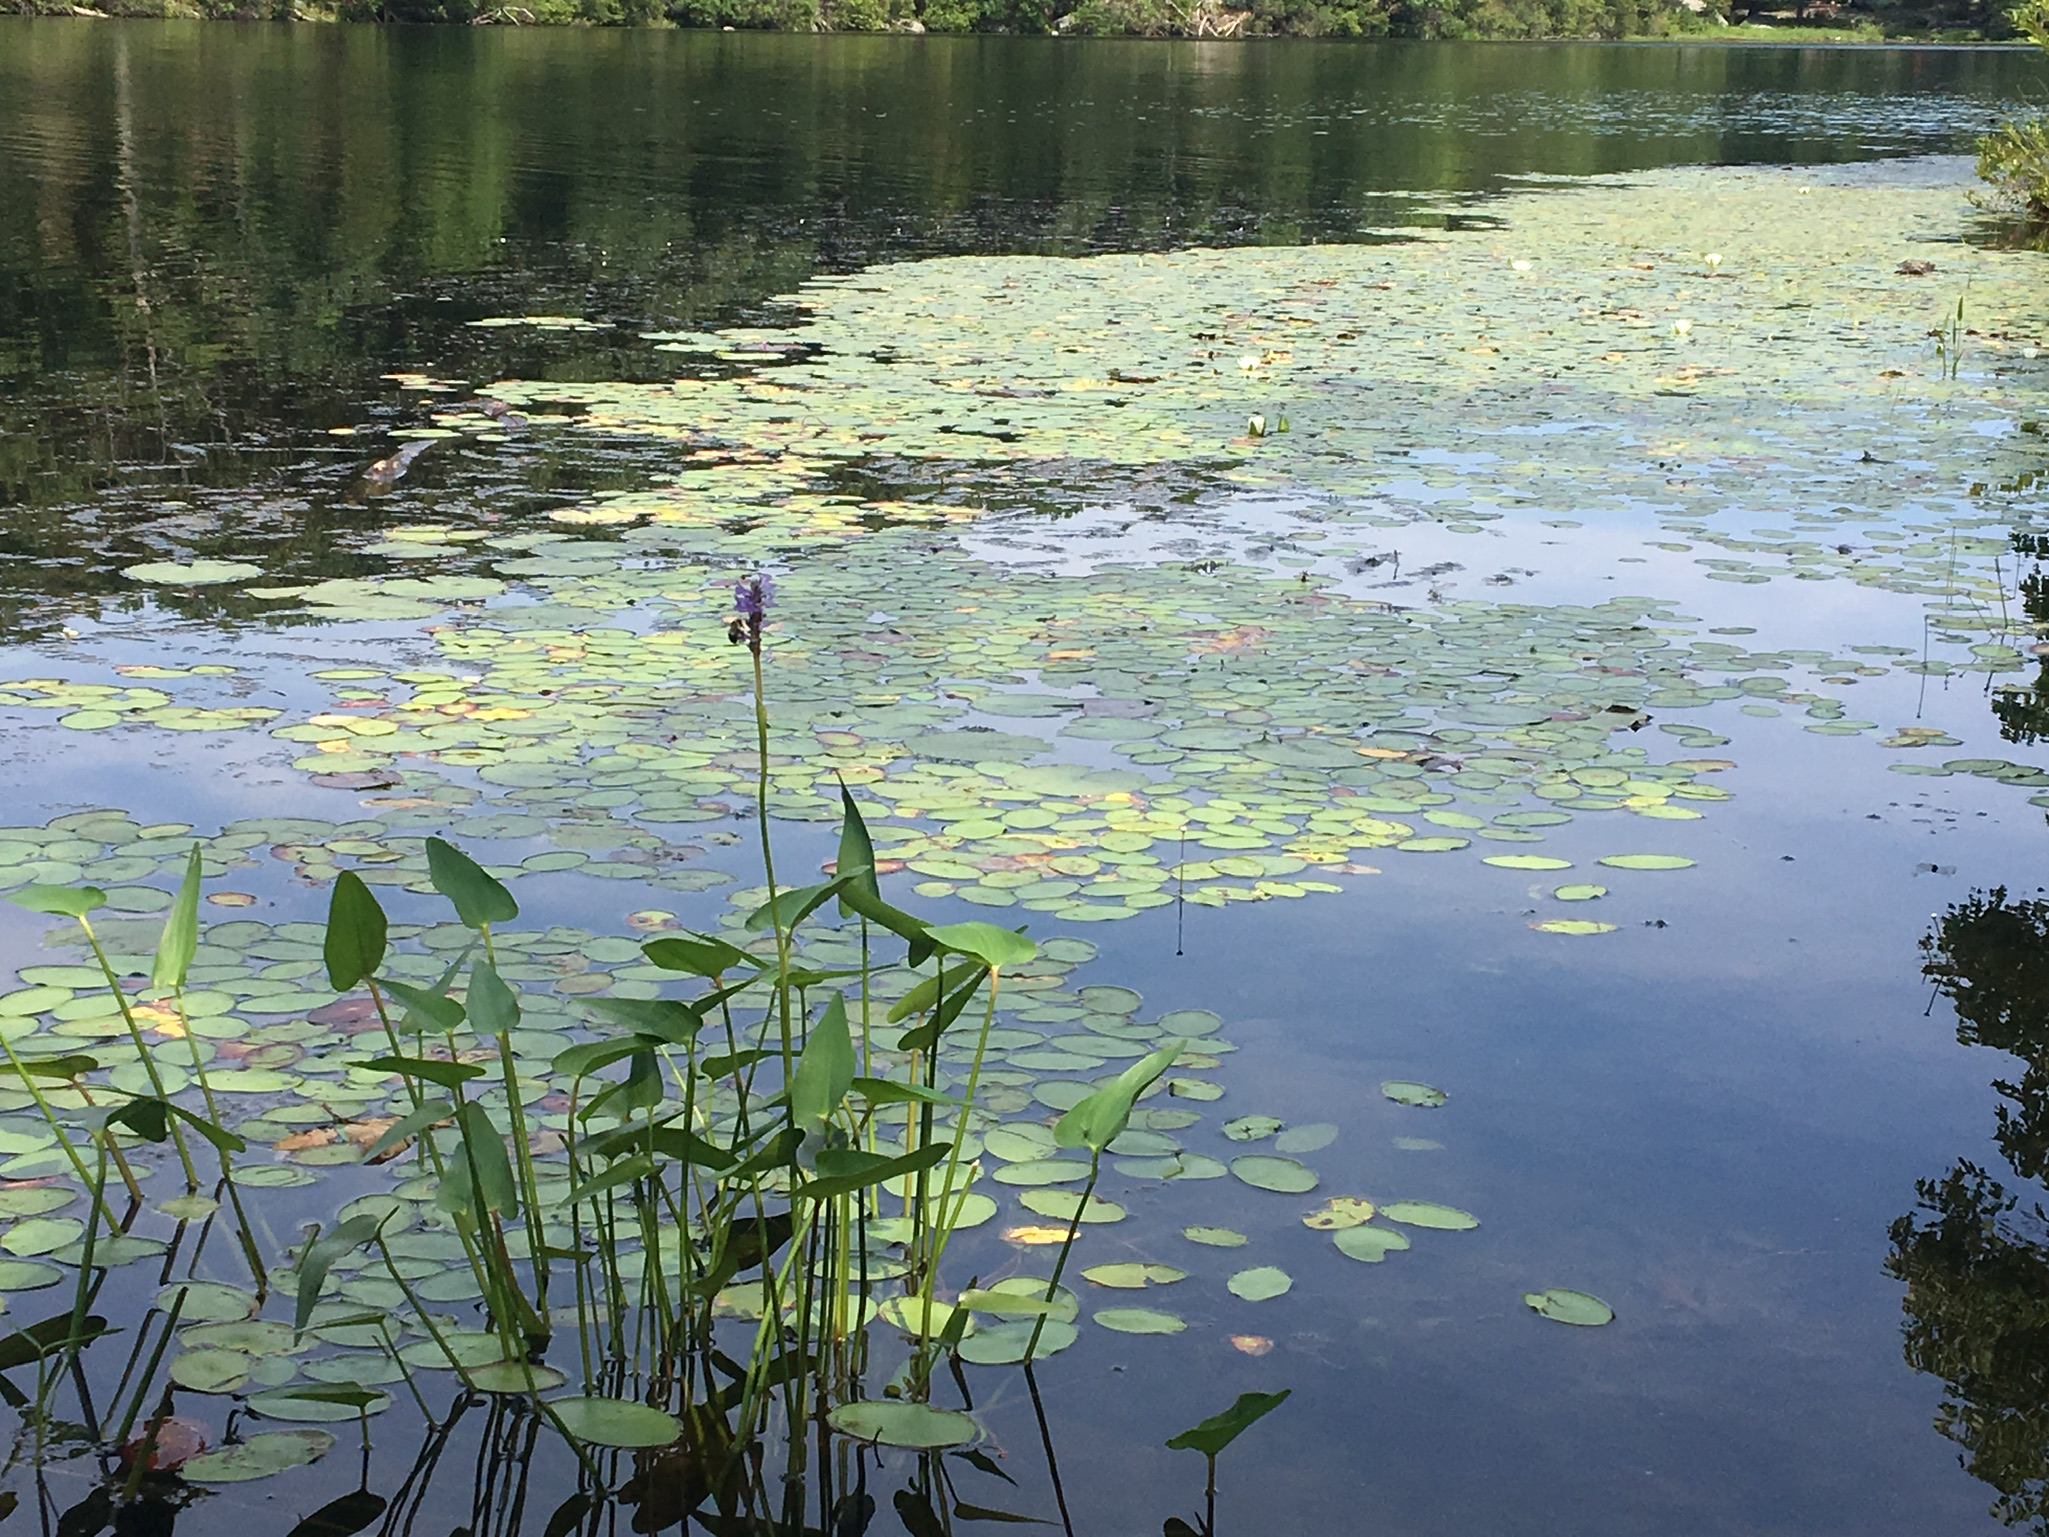 scenic lilypad pic from Helene - Harriman camps -Aug 2018.jpg